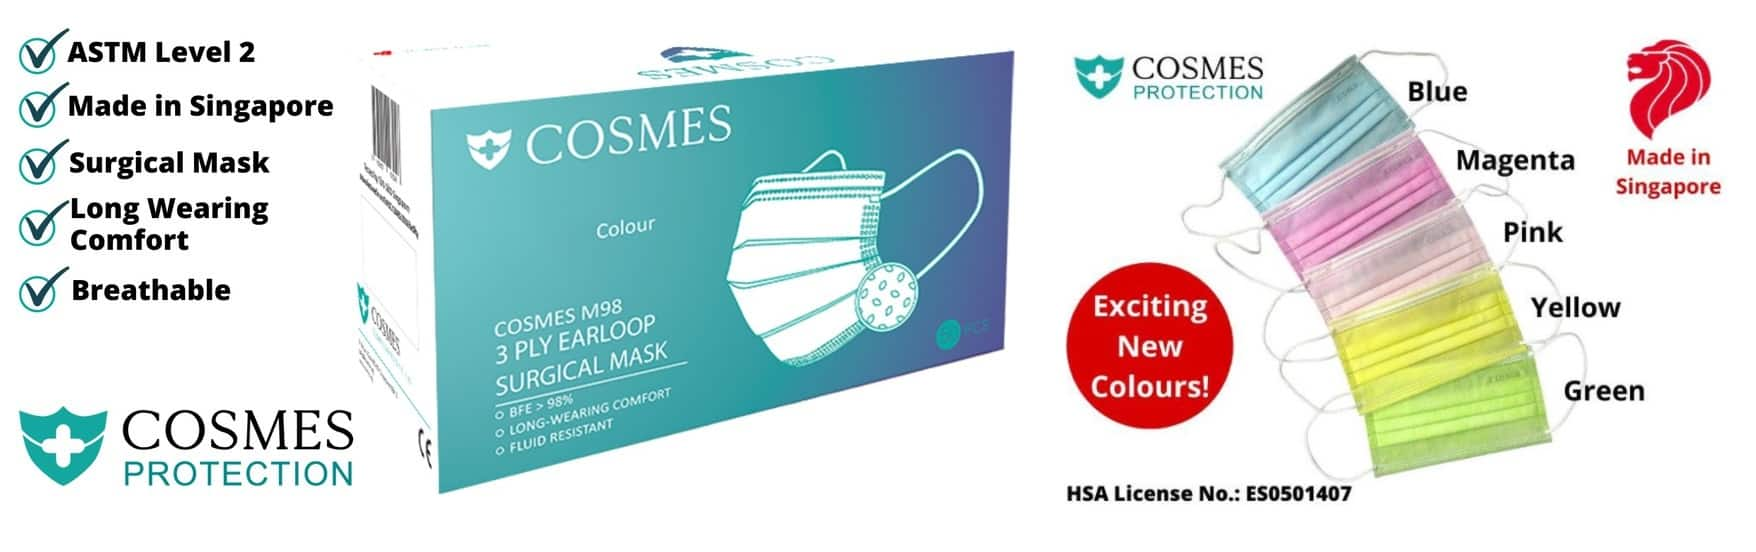 Cosmes Surgical Mask